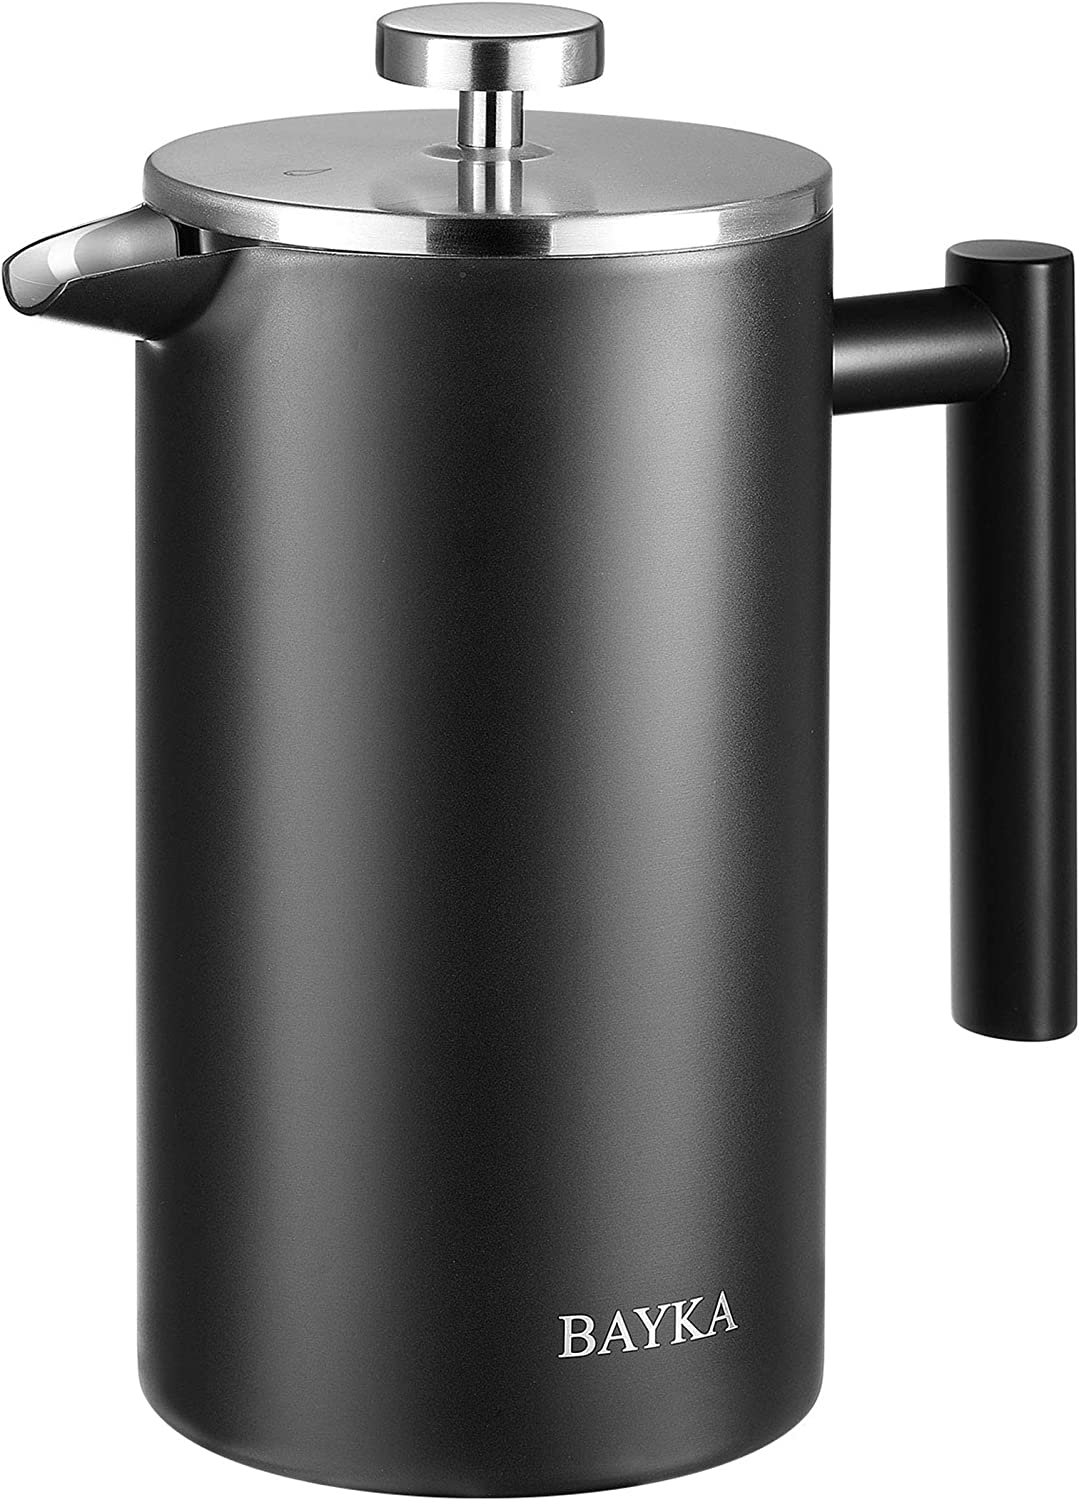 Department store BAYKA 34 Oz Super-cheap French Press Coffee 304 Grade Steel Stainless Maker